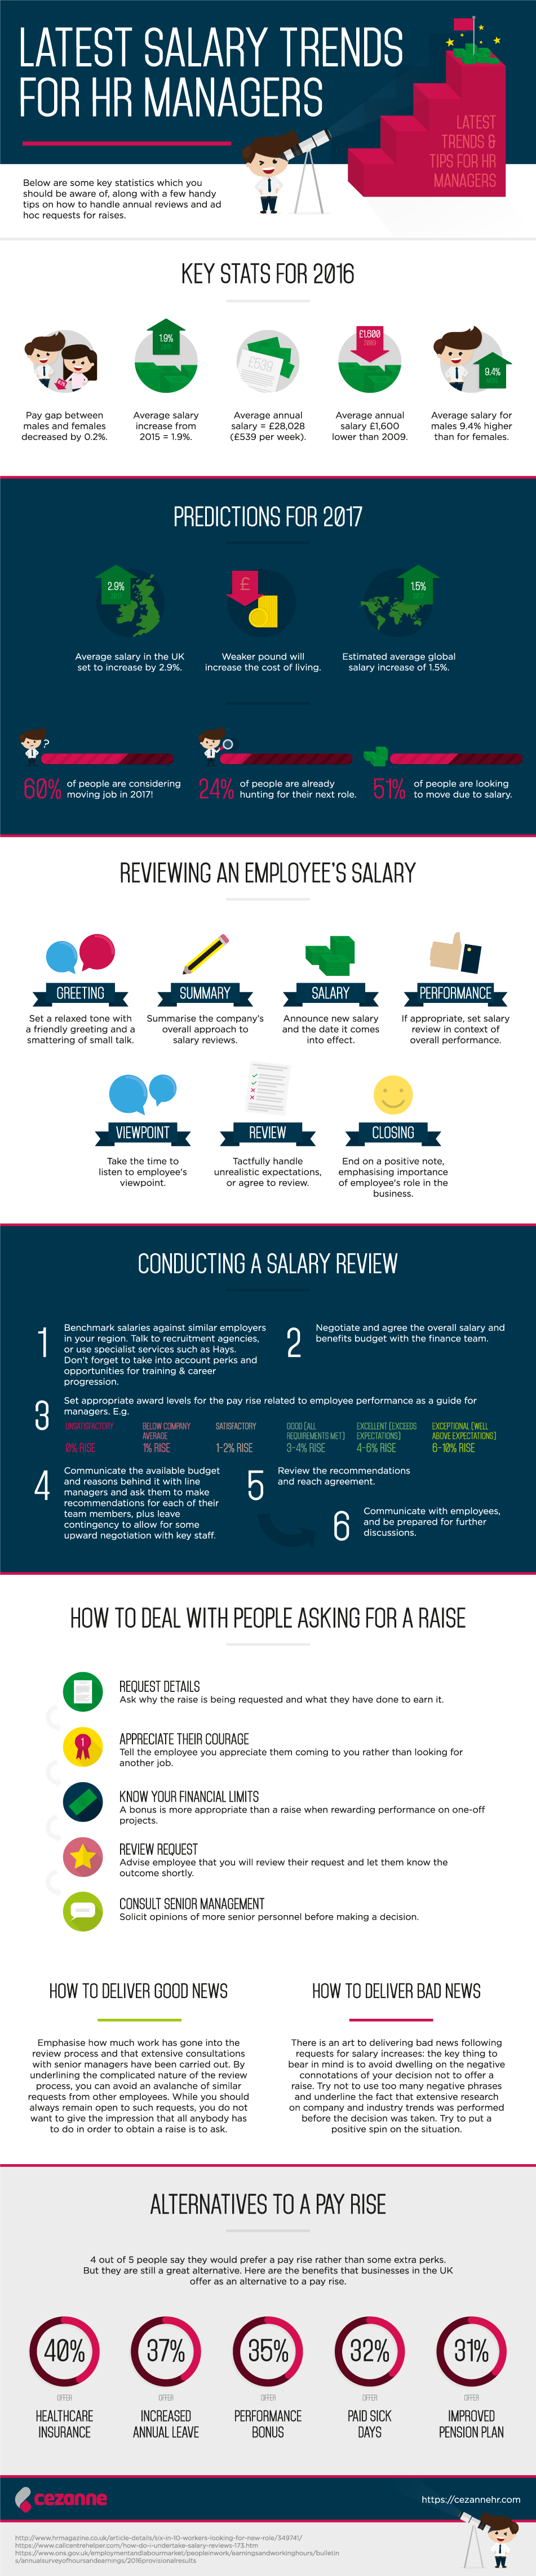 How to deliver bad news to employees - The Infographic Below Relays The Latest Information That Will Make It Easier To Offer Your Star Employees The Raises They Deserve Without Forking Over Too